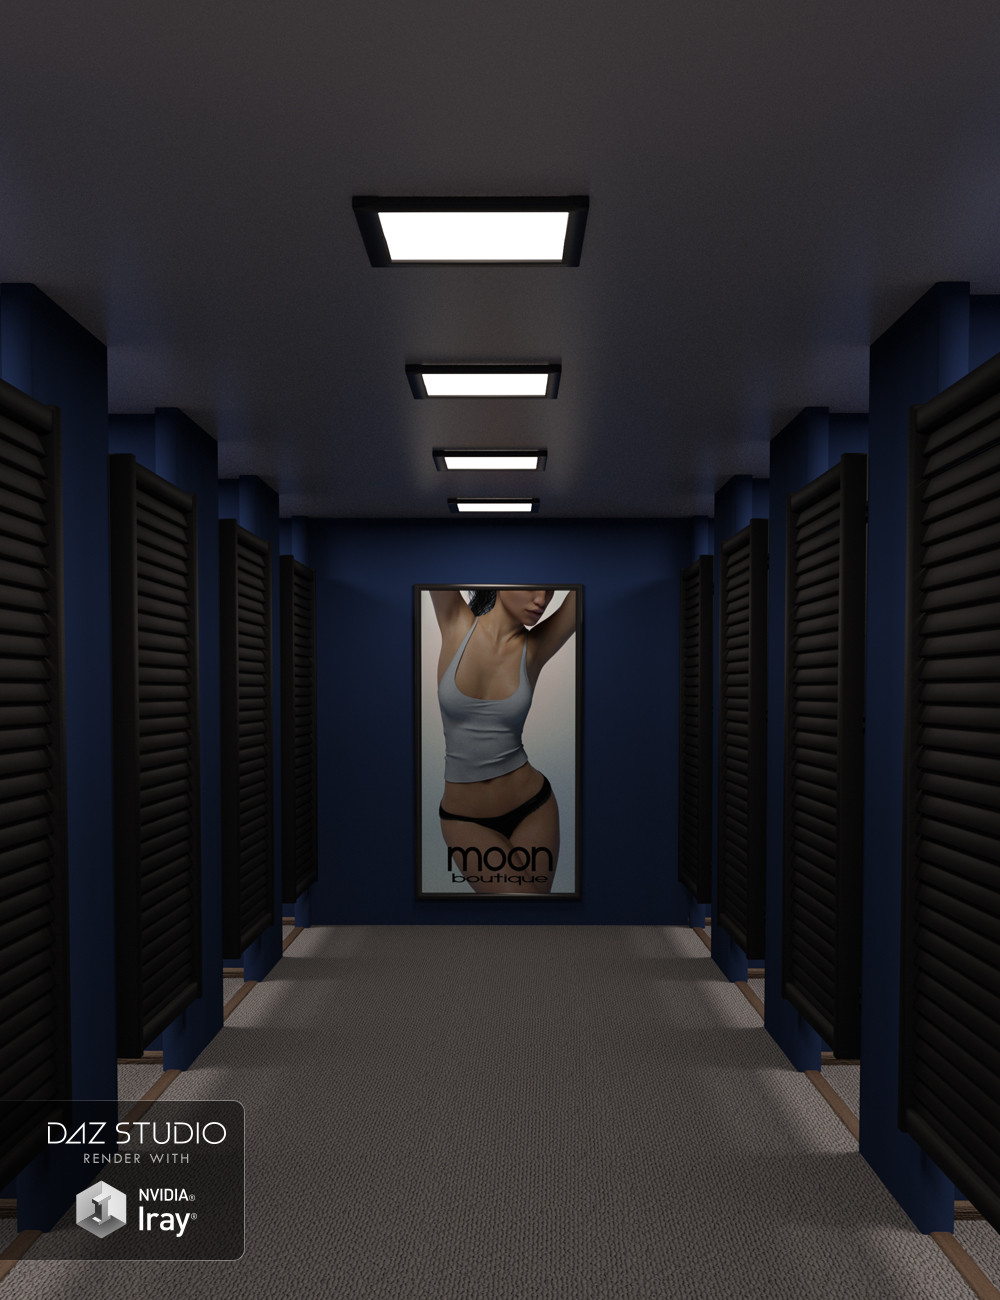 A view into the fitting rooms showing rows of changing cubicles on either side and a poster of a woman in underwear at the end of the room